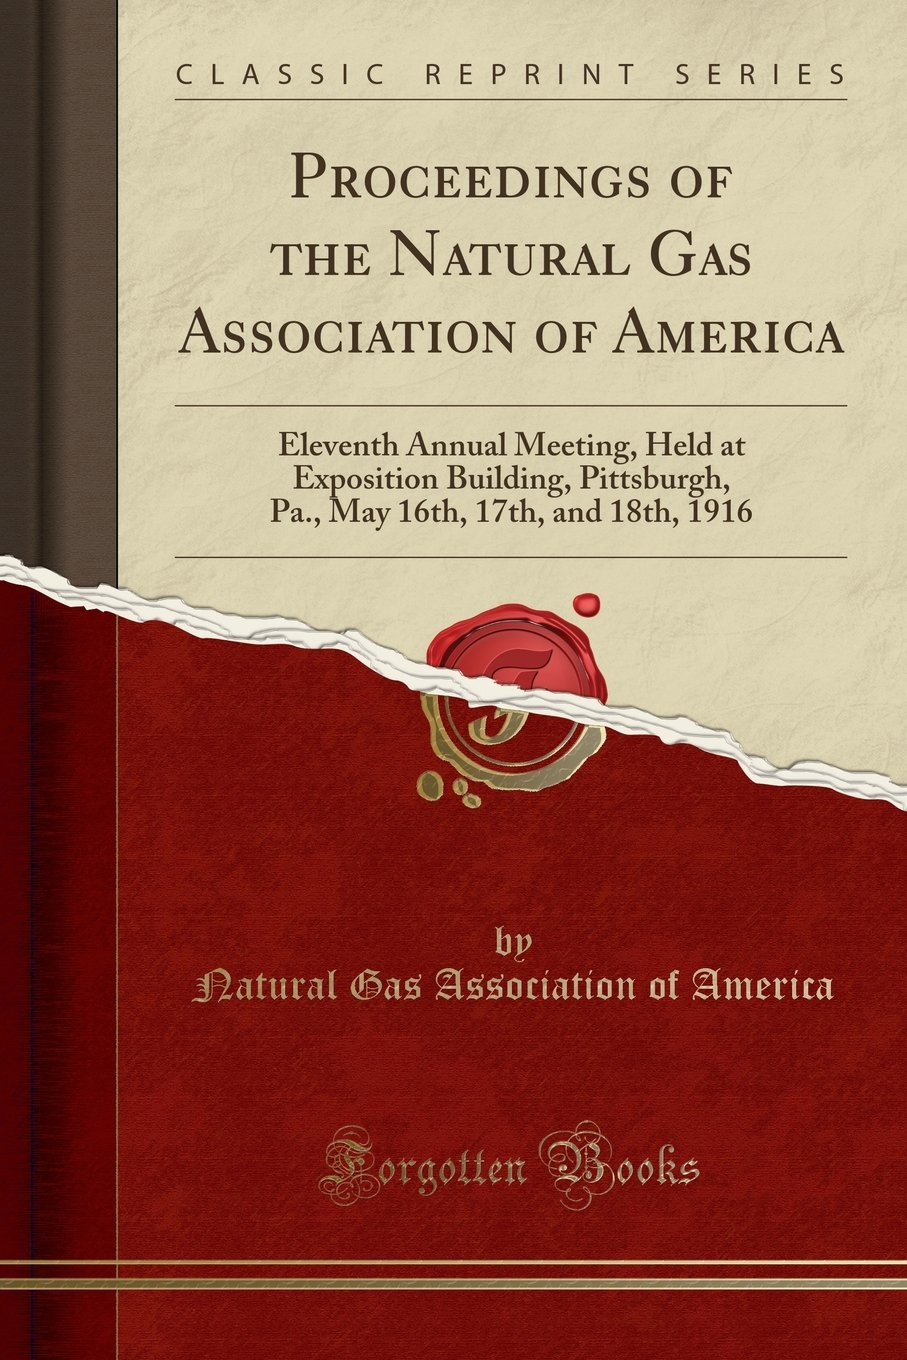 Download Proceedings of the Natural Gas Association of America: Eleventh Annual Meeting, Held at Exposition Building, Pittsburgh, Pa., May 16th, 17th, and 18th, 1916 (Classic Reprint) pdf epub